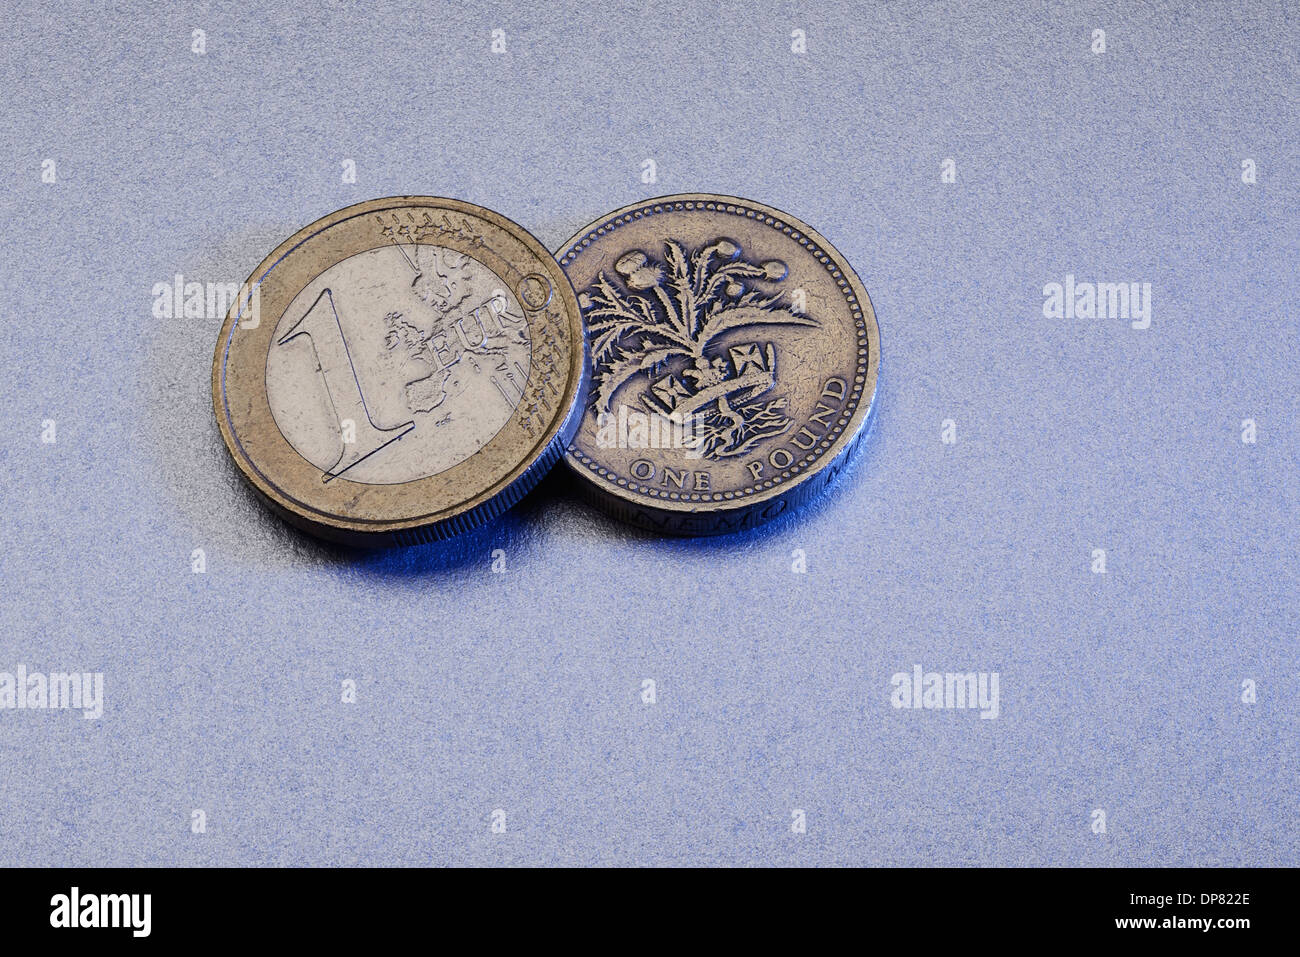 One Euro coin and a one pound coin - Stock Image